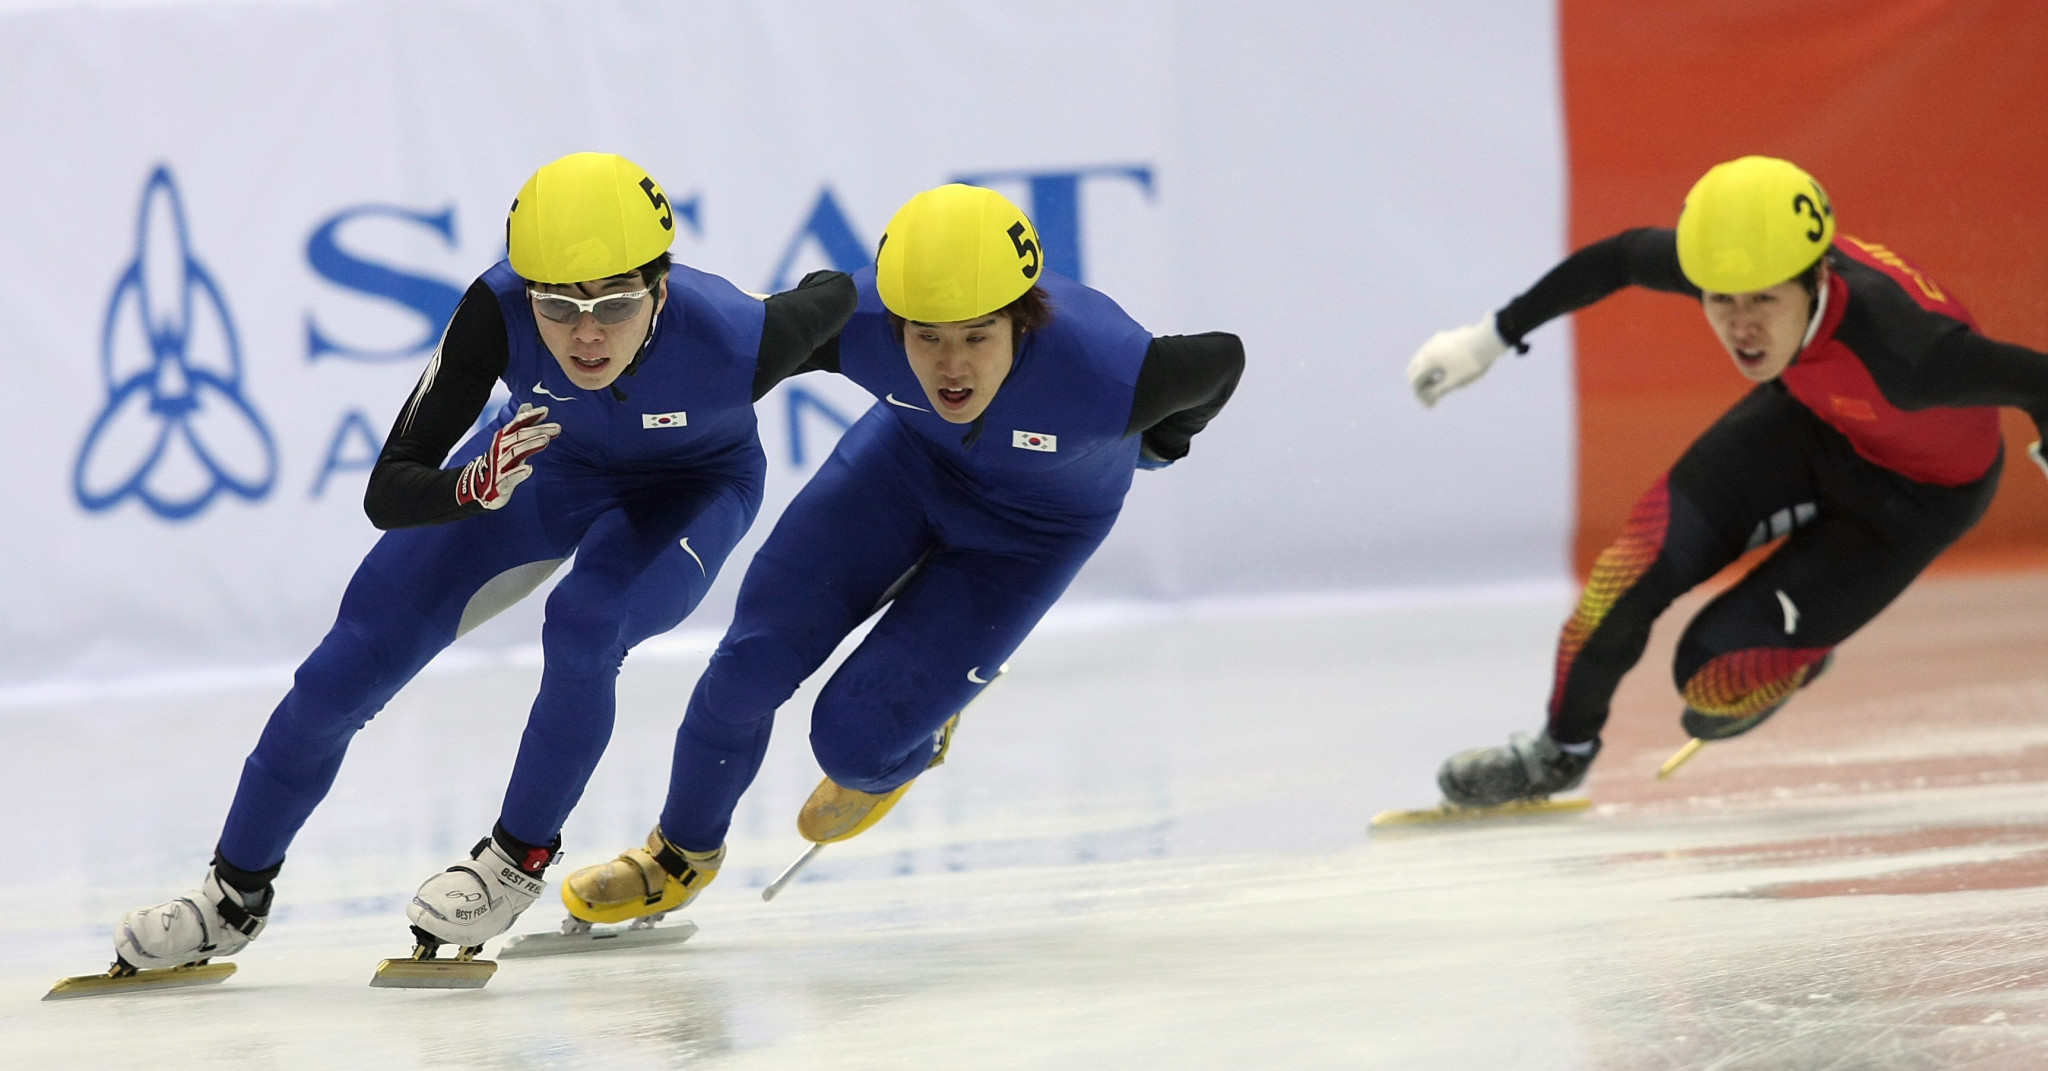 South Korean one-two in men's mass start final at Heerenveen Speed Skating World Cup